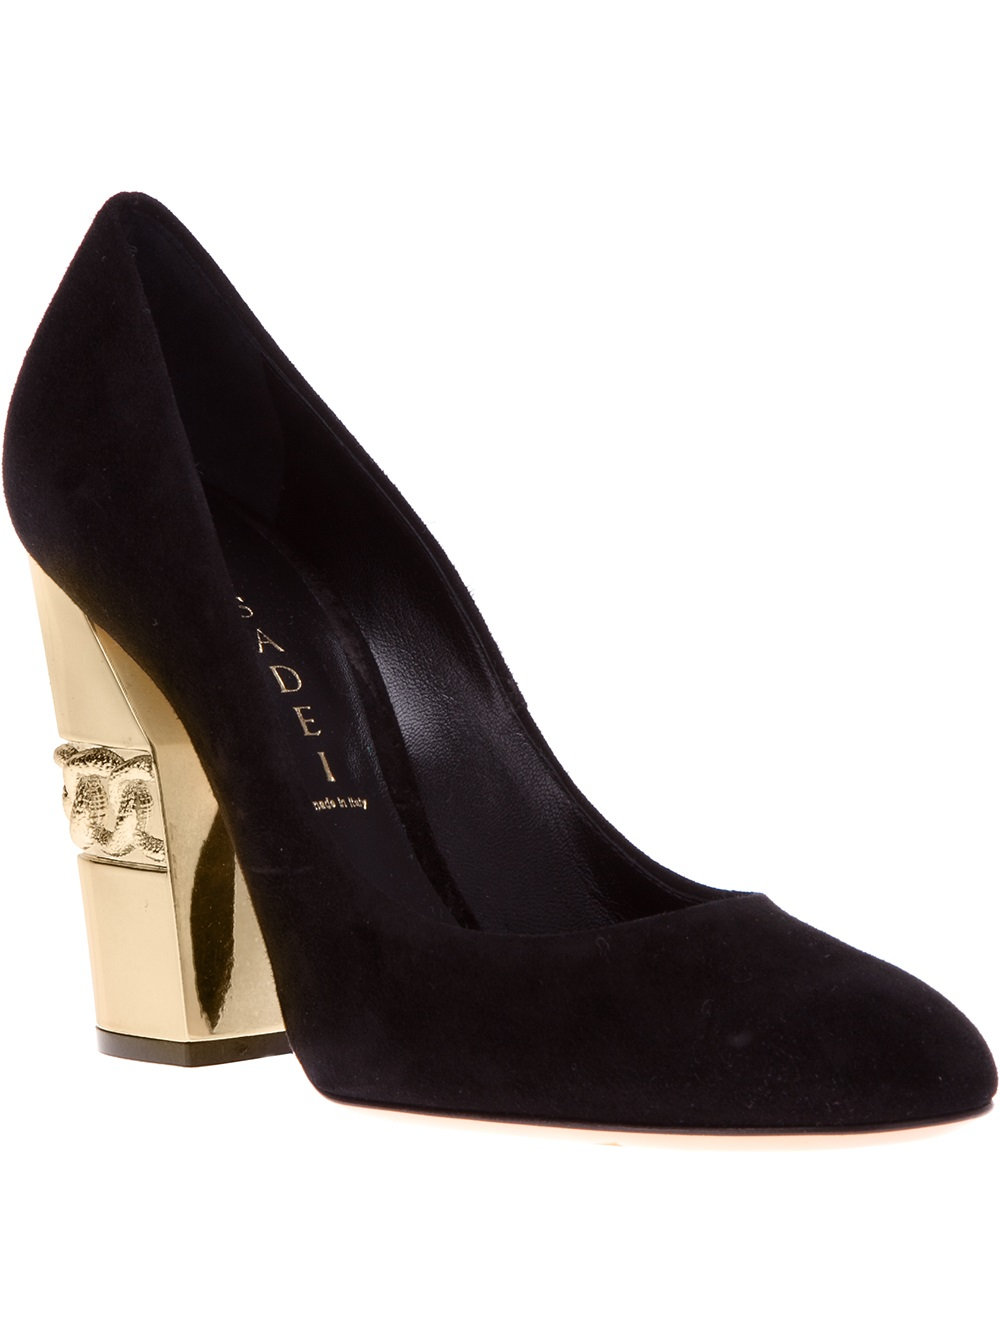 Lyst - Casadei Chunky Heel Pump in Black